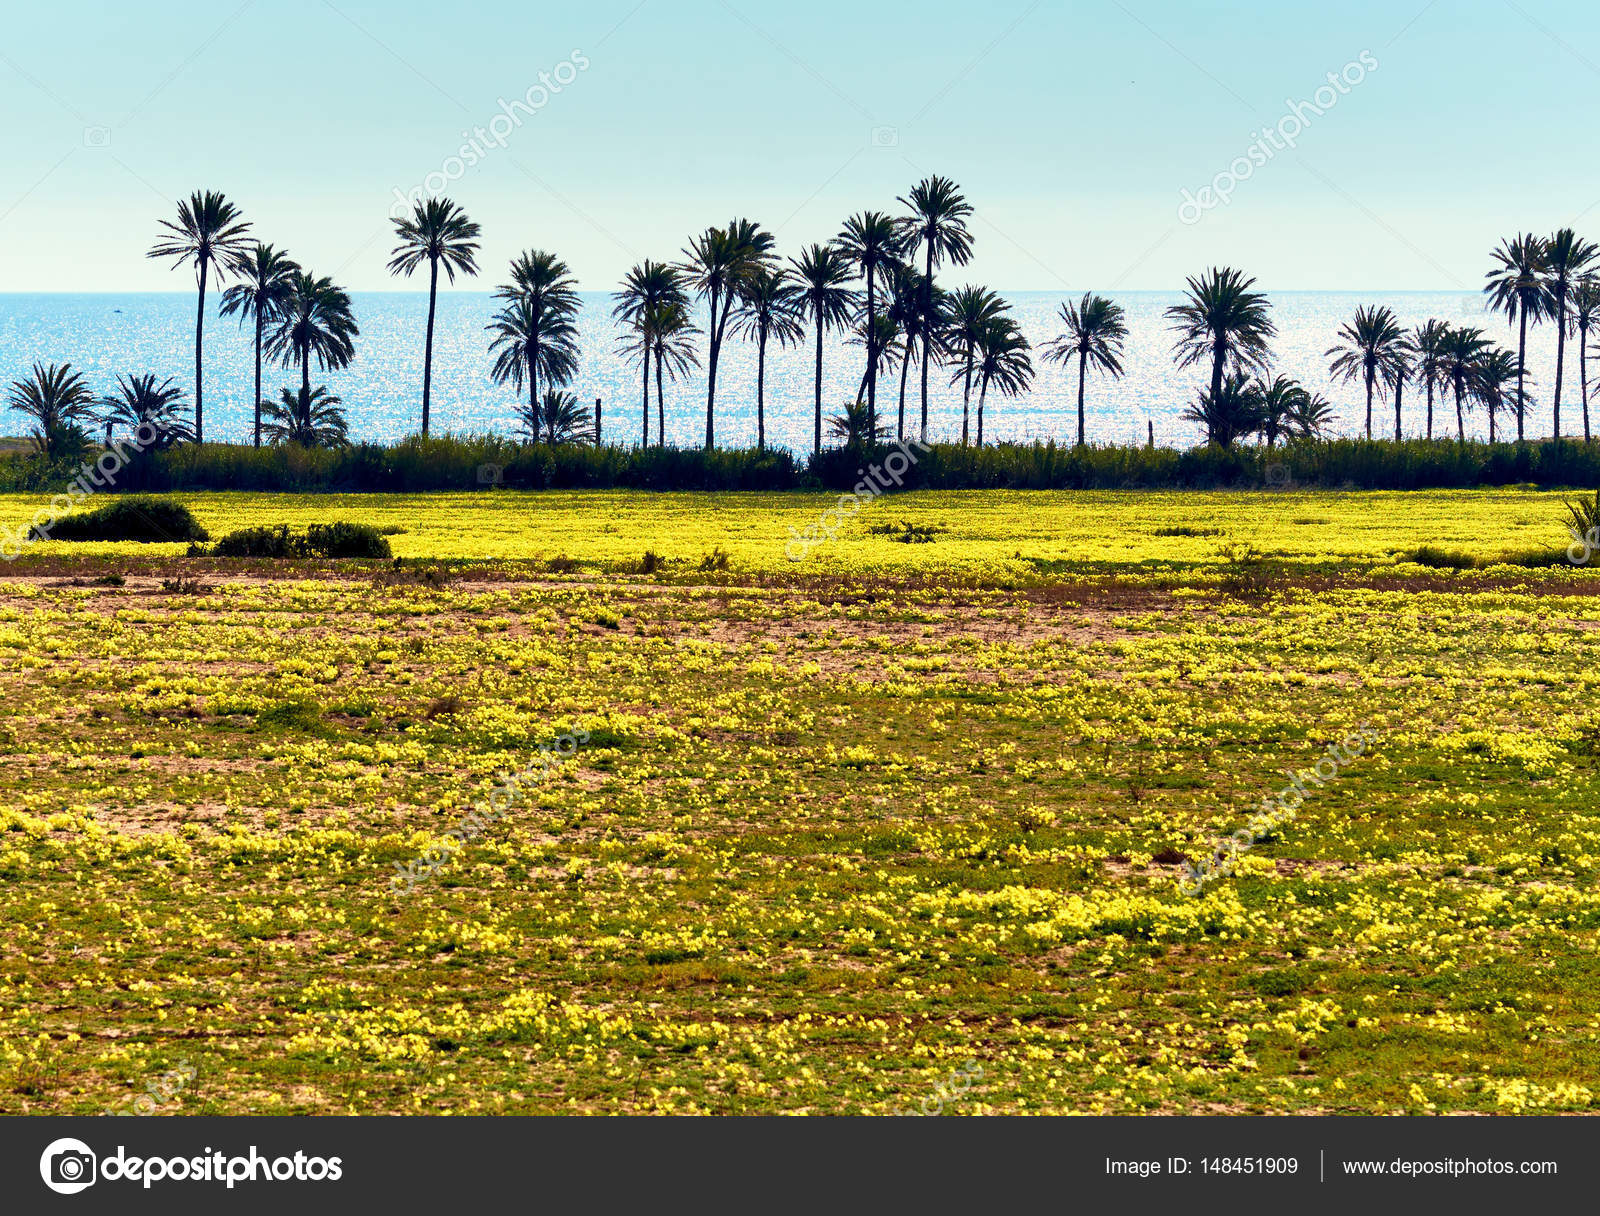 Lawn with a bright yellow flowers and palm trees south of spain lawn with a bright yellow flowers and palm trees south of spain stock photo mightylinksfo